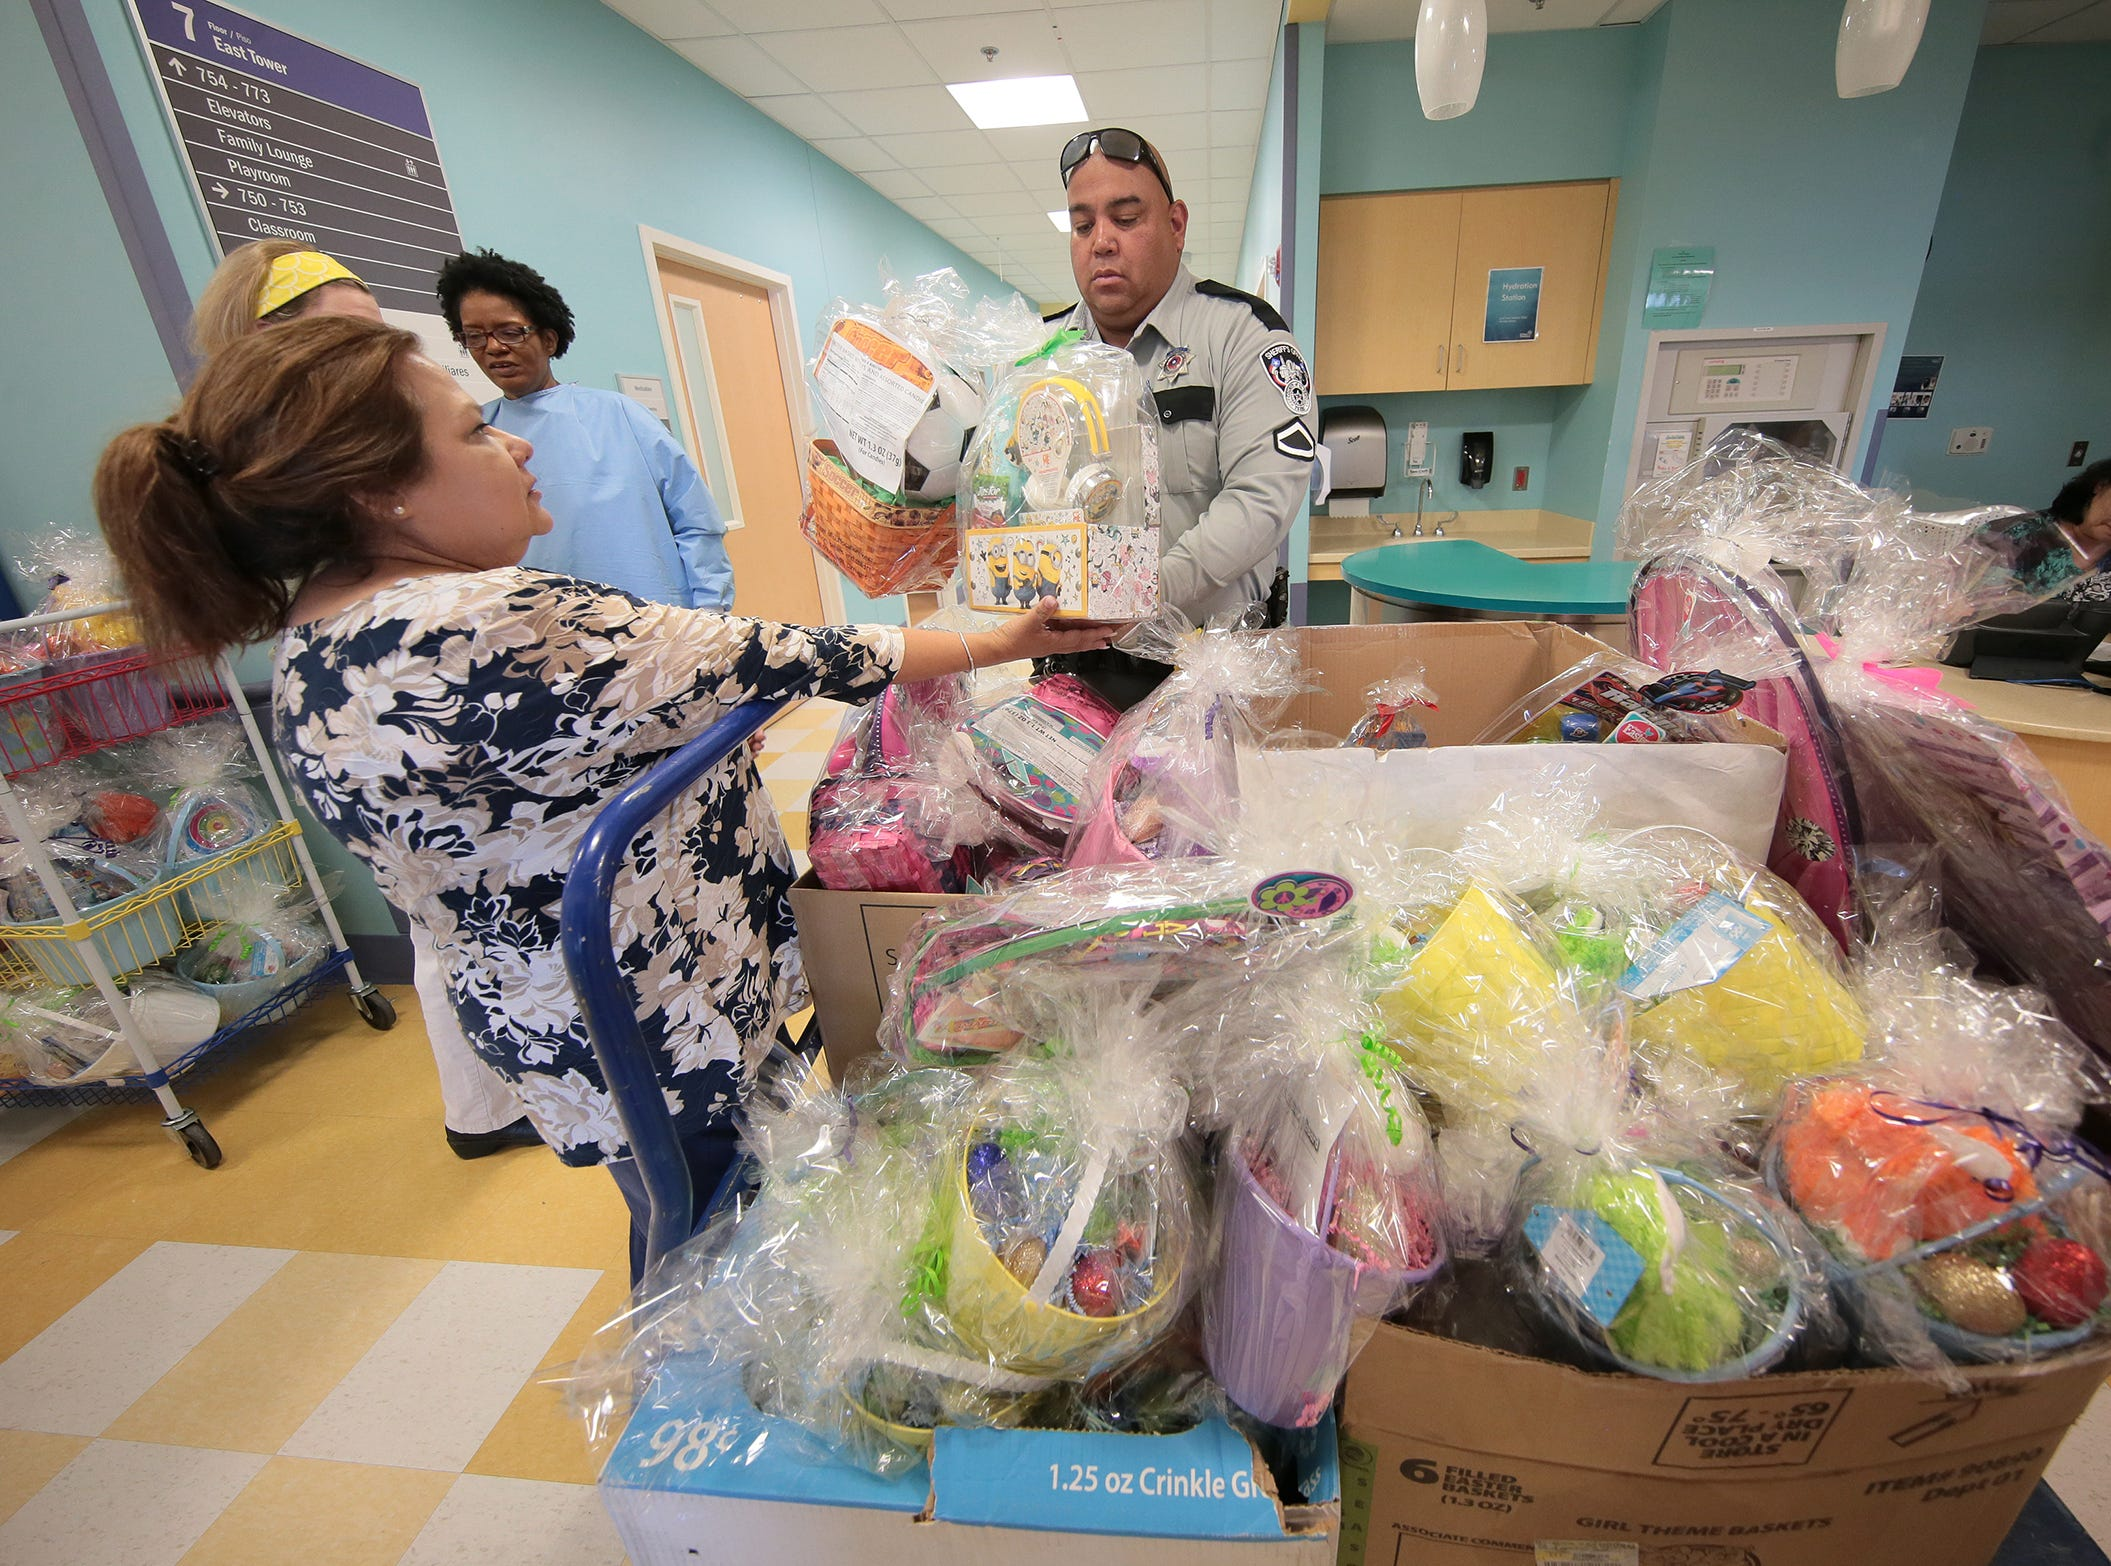 The El Paso Sheriff's Office along with Sheriff Richard Wiles and Easter Bunny visited kids at El Paso Children's Hospital Thursday.